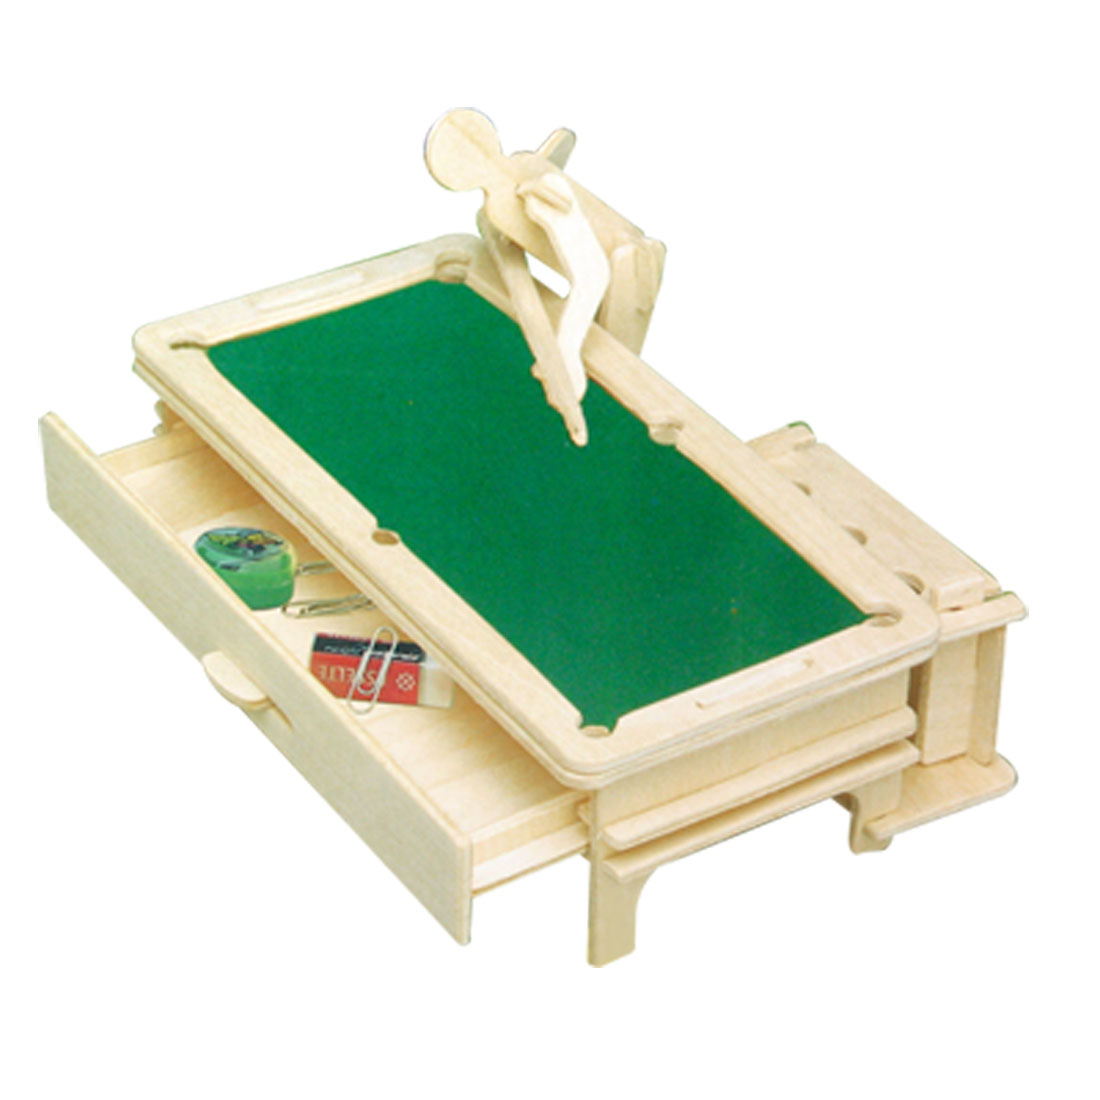 Snooker-DIY-Pen-Holder-Woodcraft-Construction-Kit-New